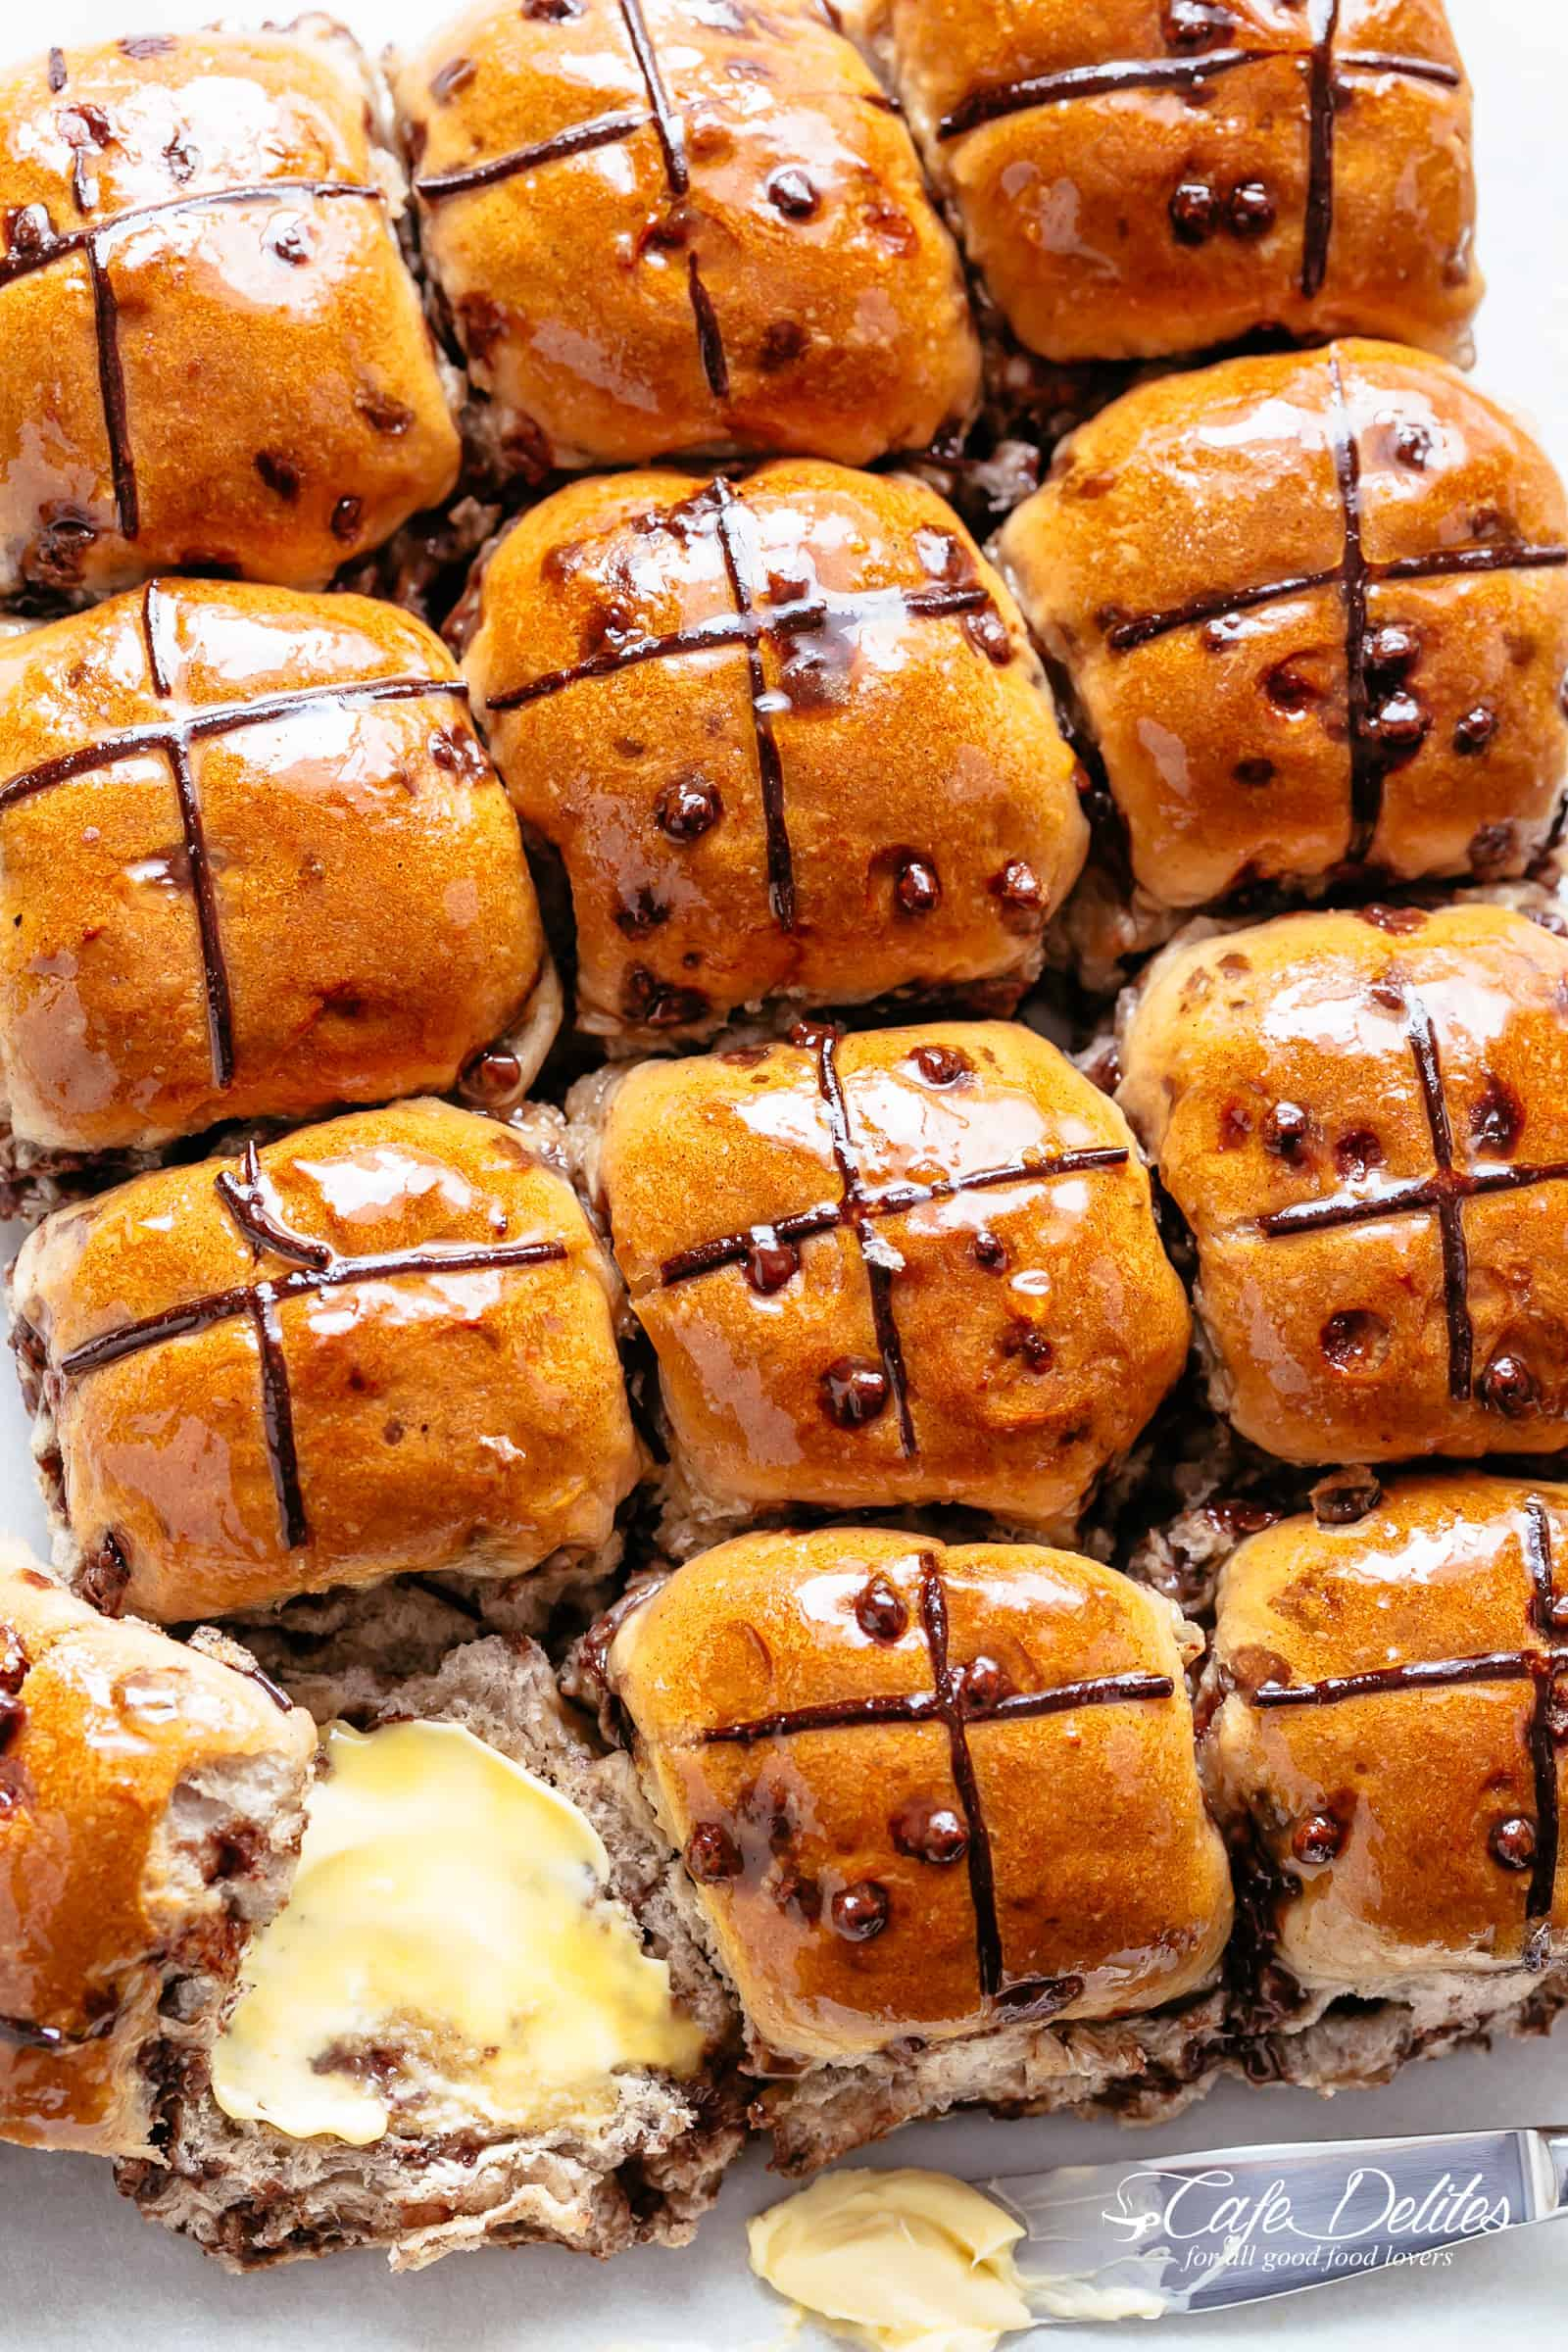 Easy Hot Cross Buns (Chocolate Chips) | cafedelites.com